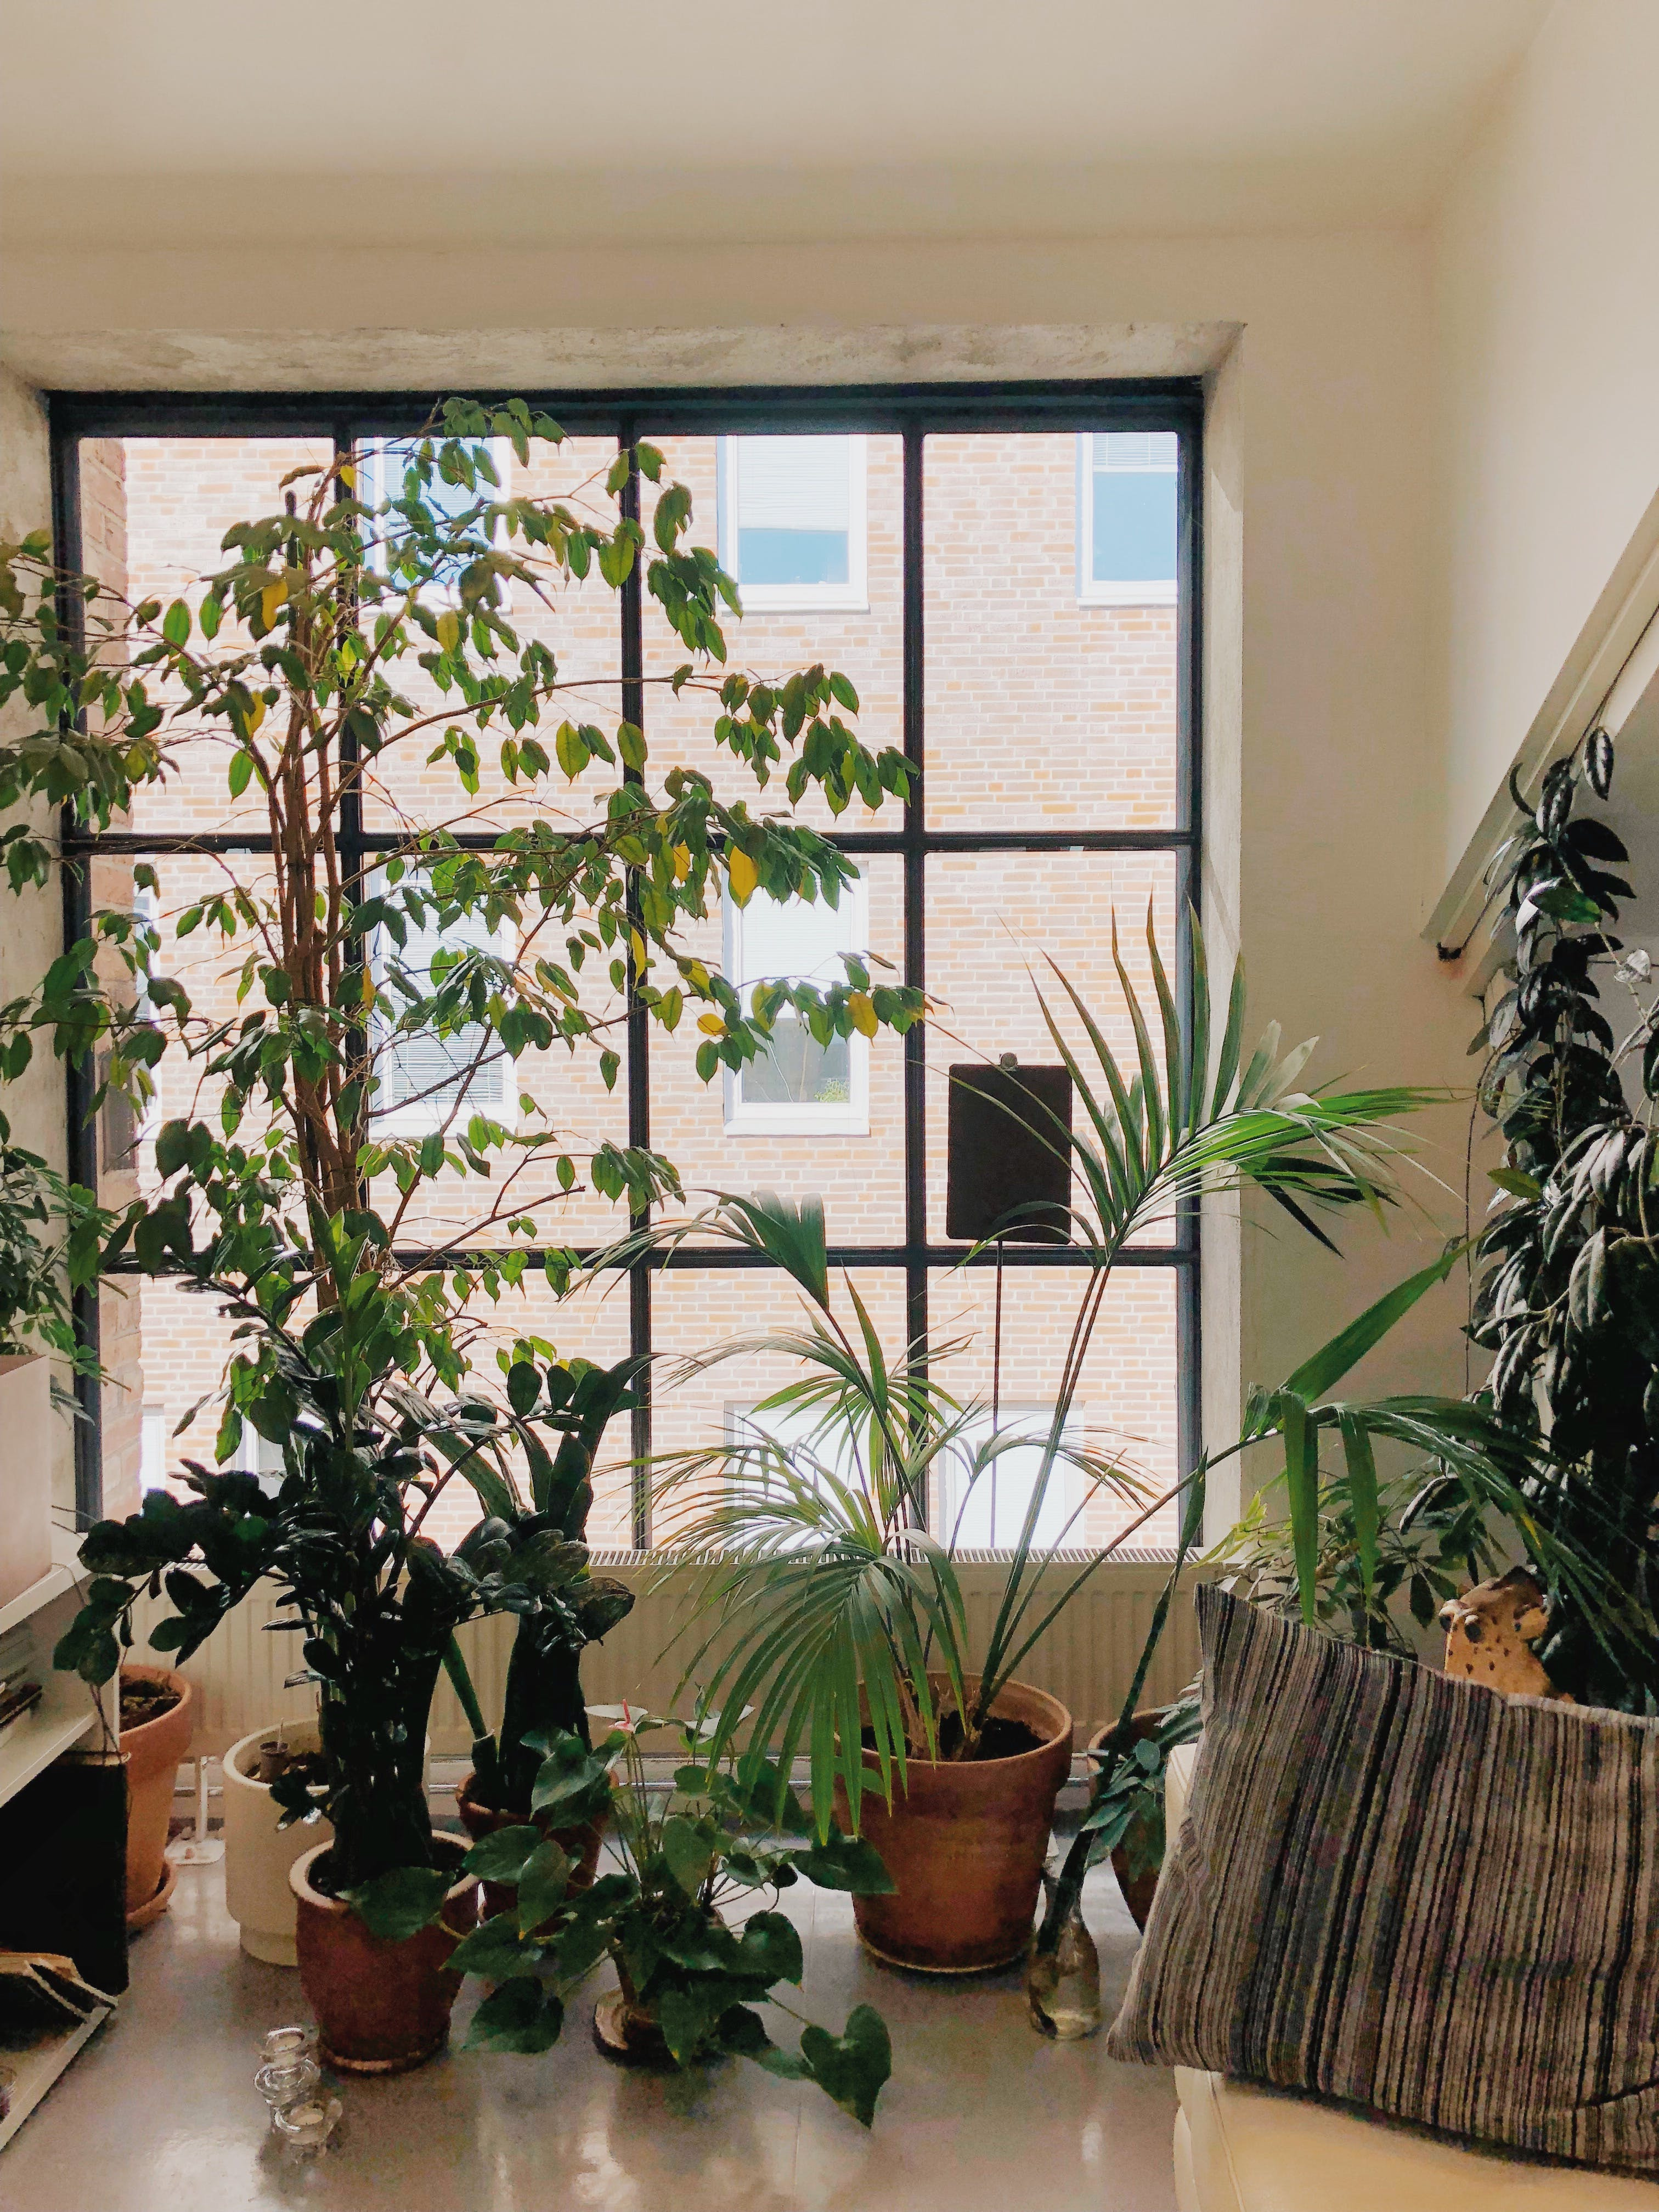 Variety of Green Leaf Plants on Table Infront of Window